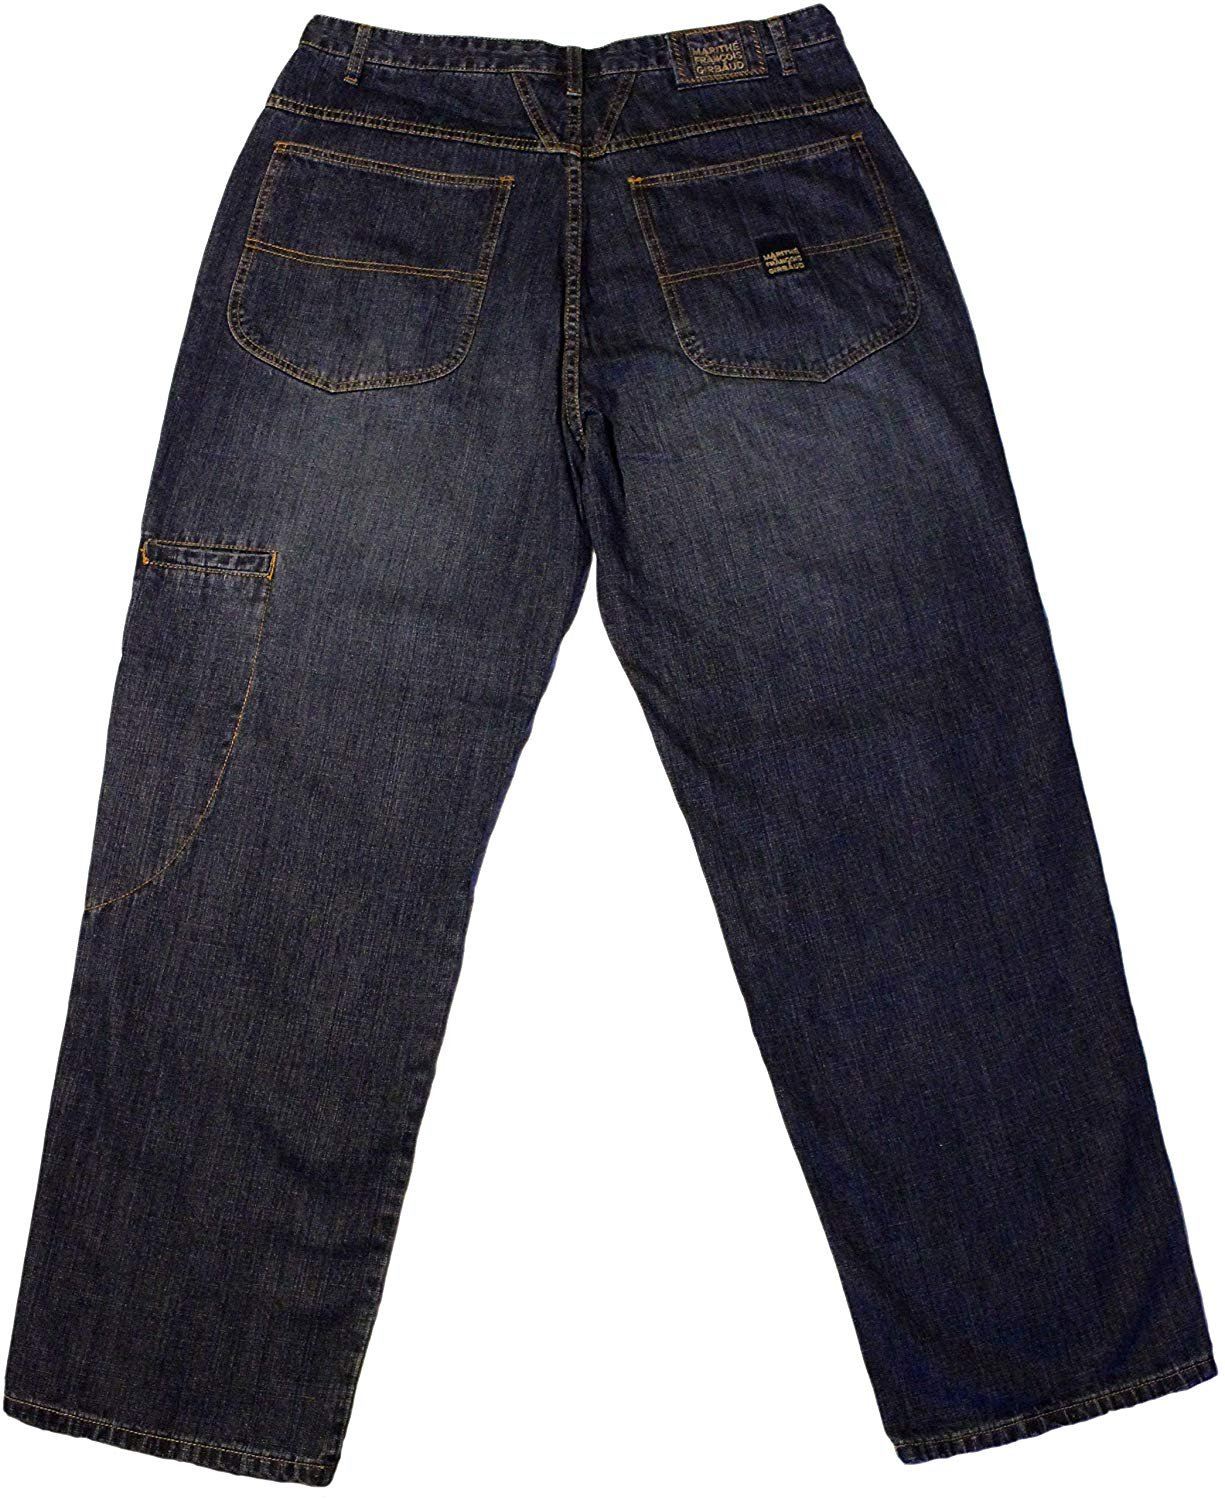 Brand X Jean - Crosshatch